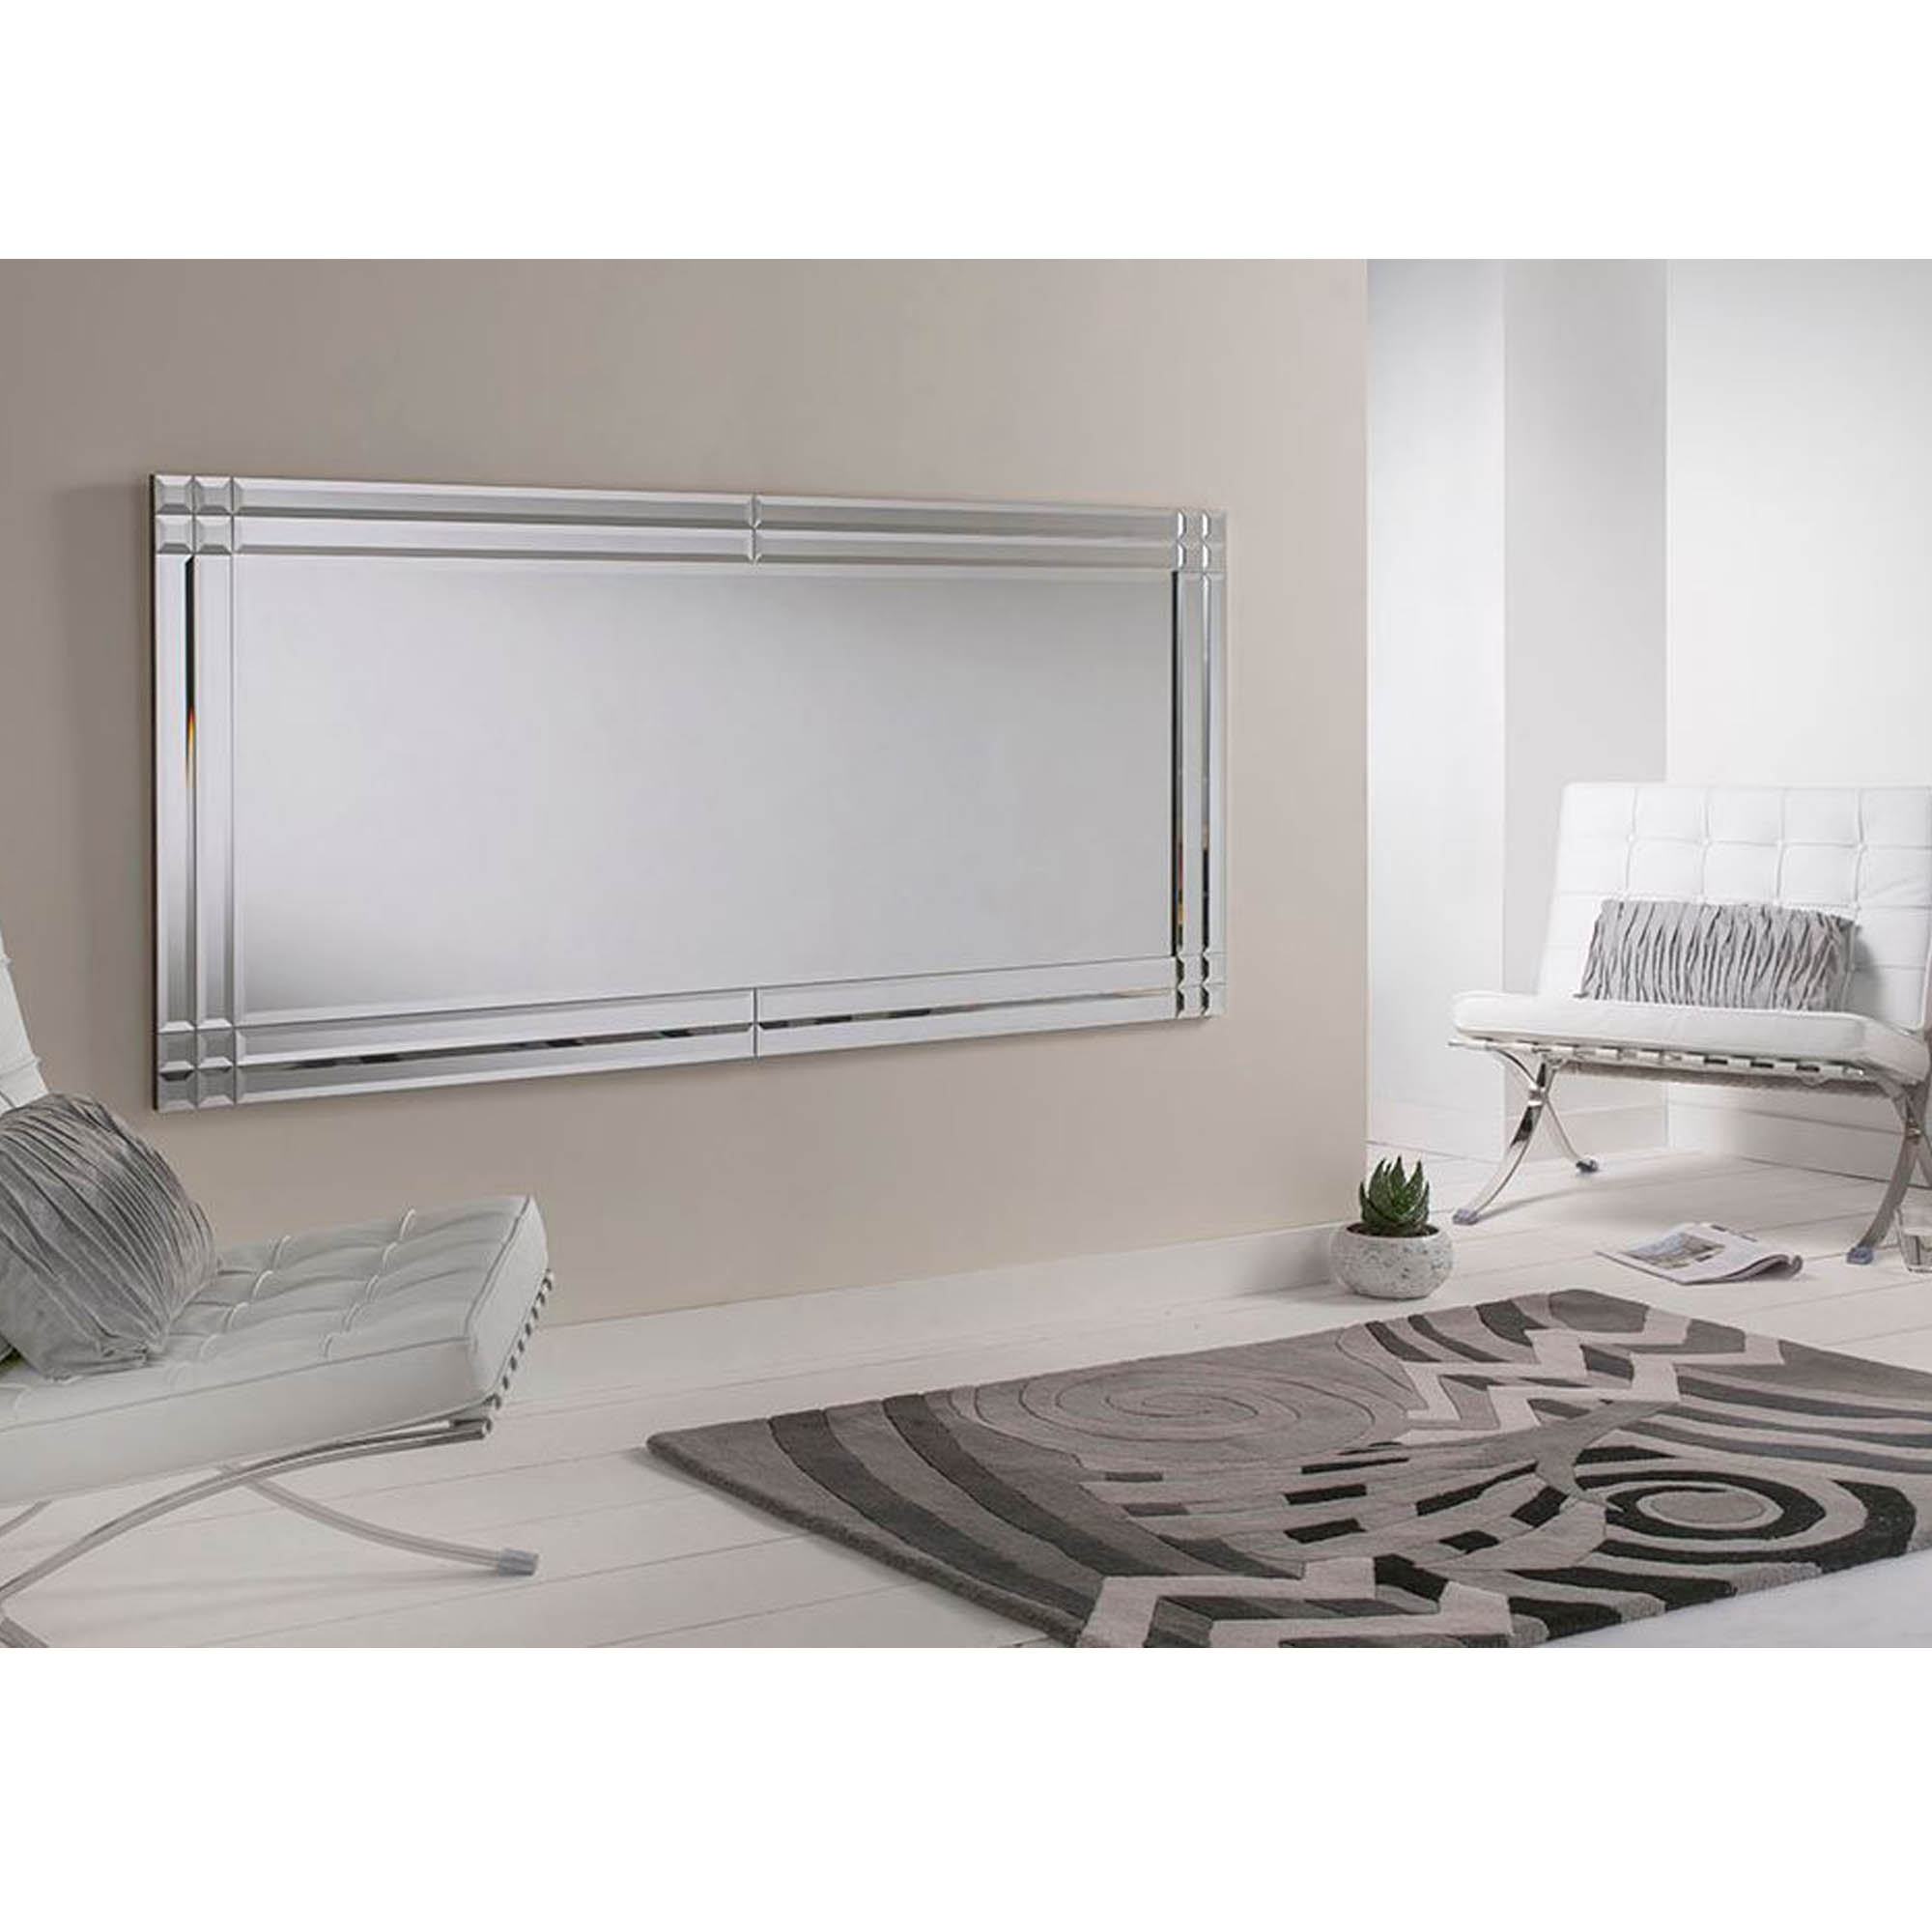 Large Bevelled Rectangular Wall Mirror | Contemporary ... on Wall Mirrors id=27924